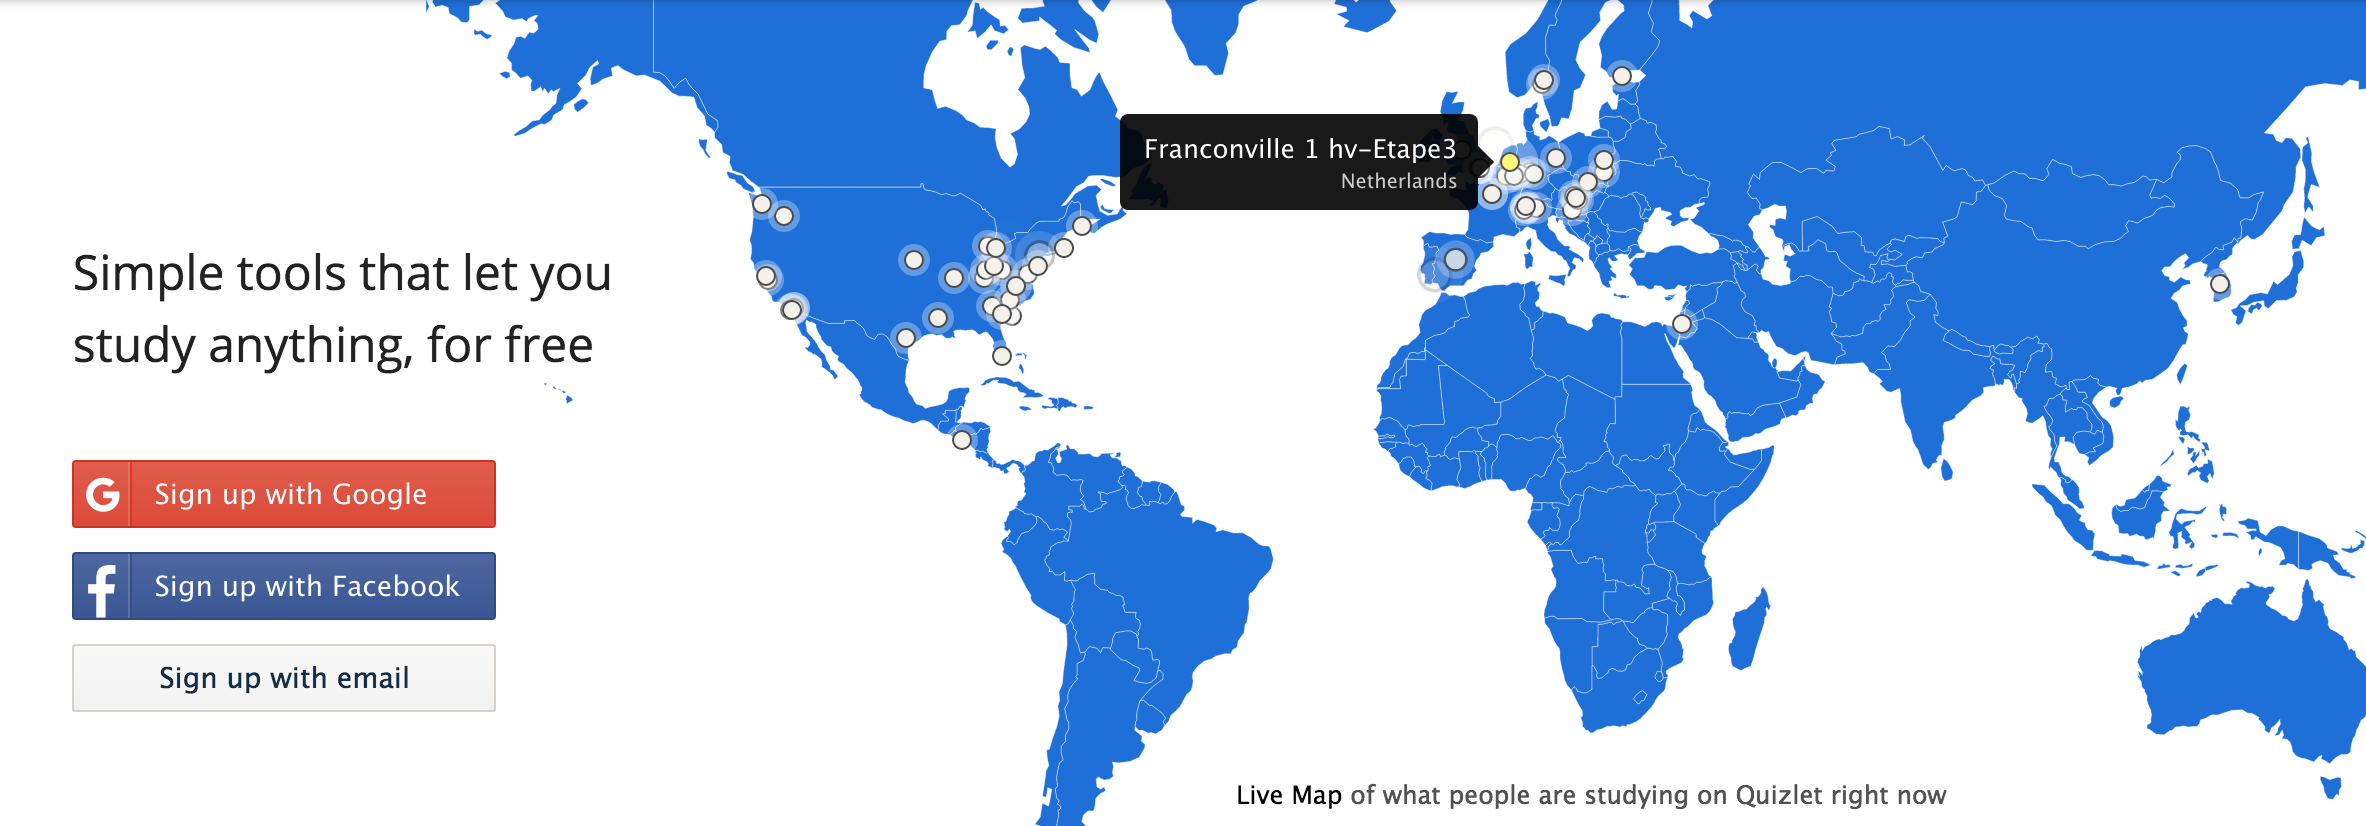 Inspiration for the map UI was taken from Quizlet's homepage!